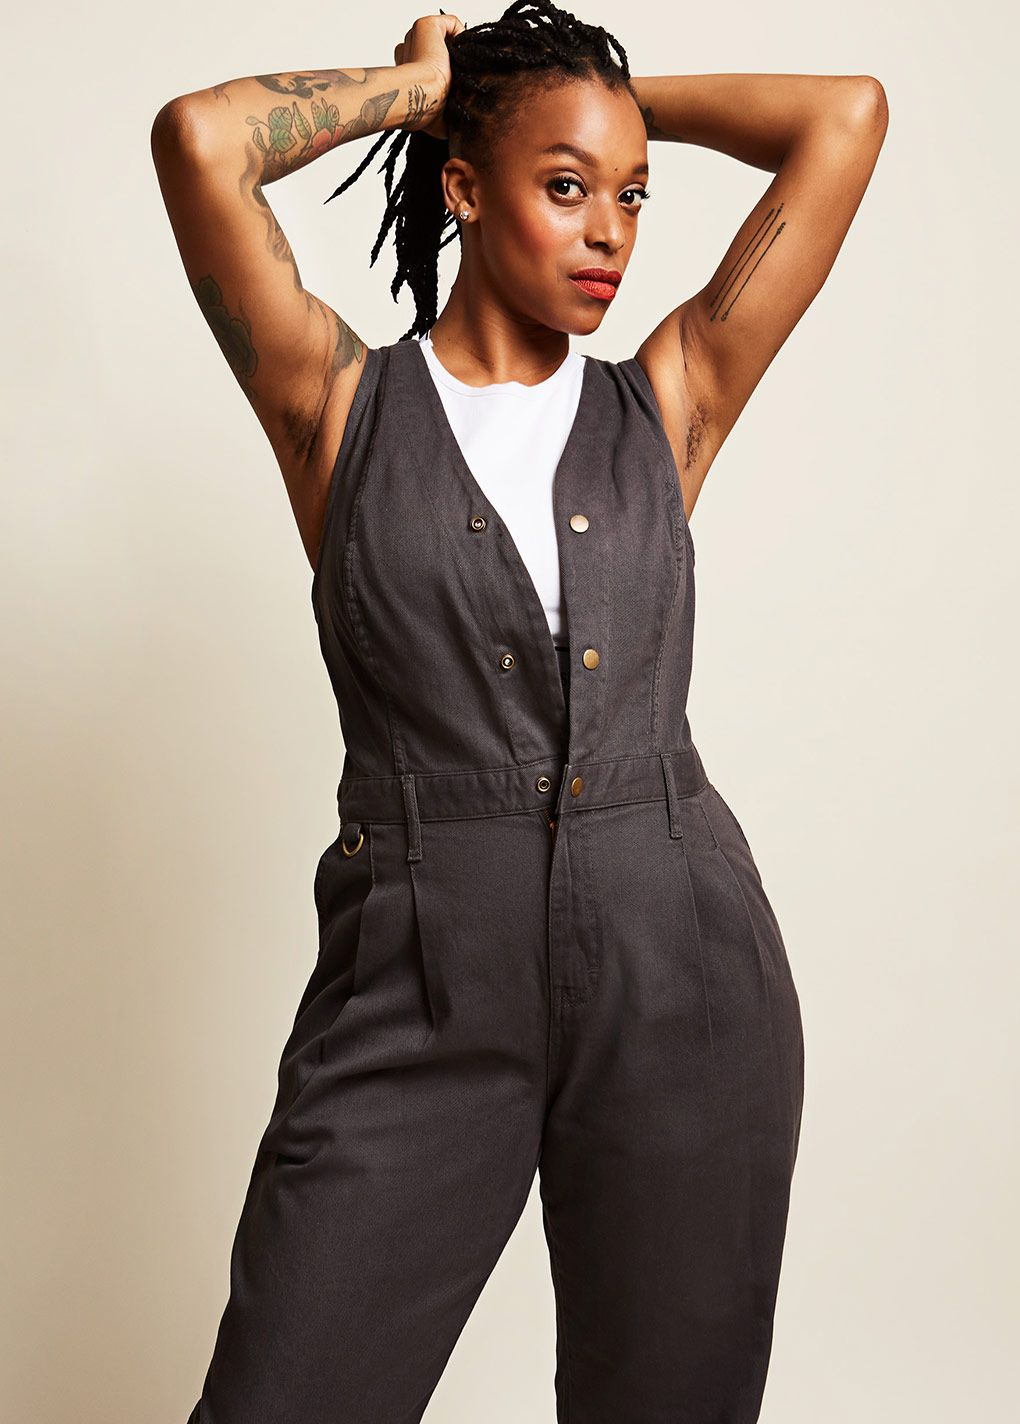 Open Front Overalls - Slate Grey   Overalls gray, Overalls